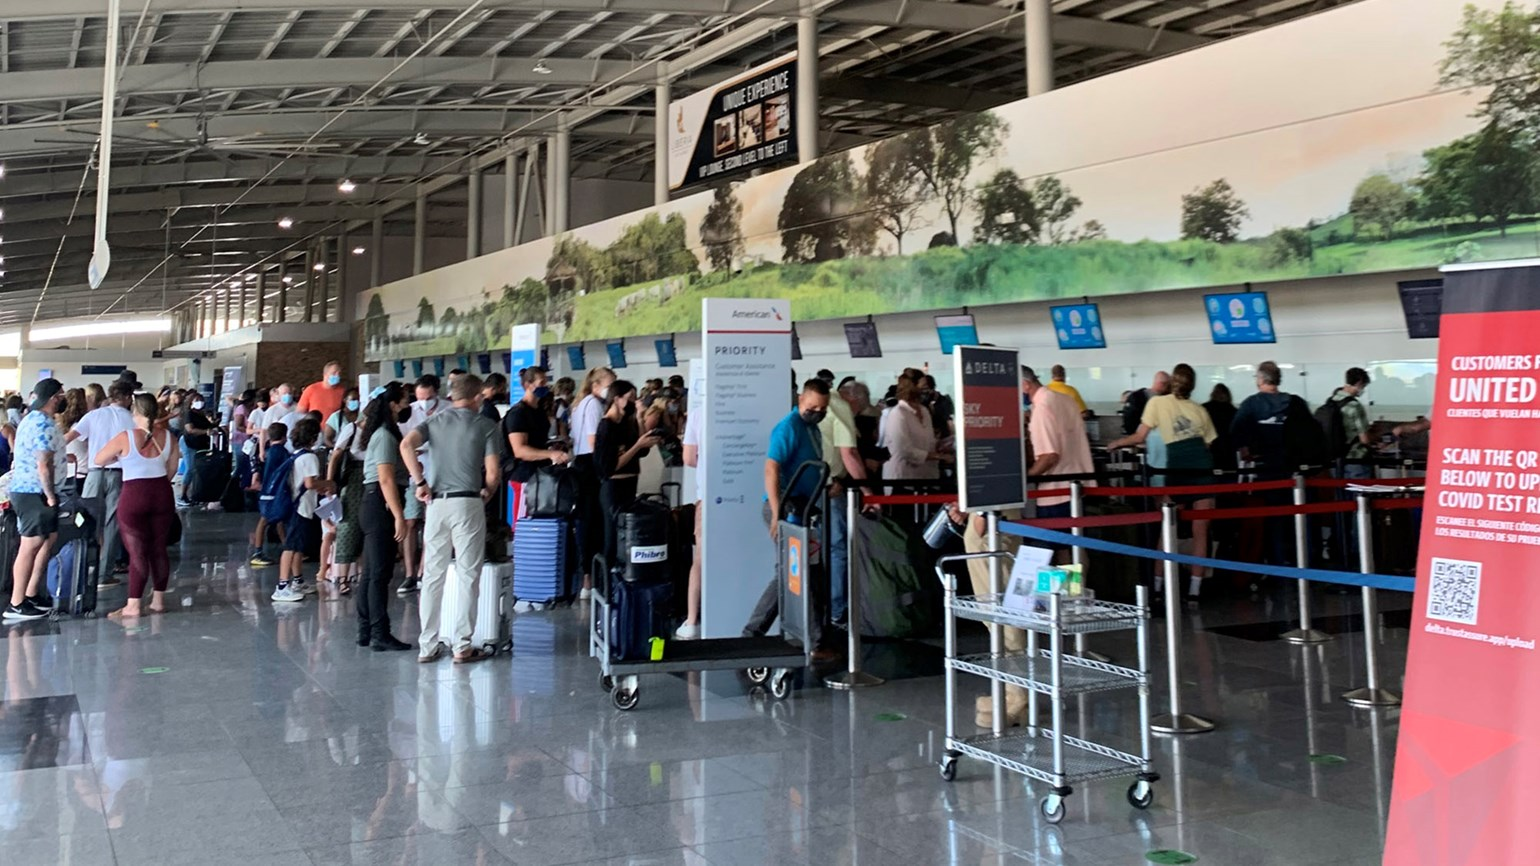 Dispatch, Costa Rica: The frustrations of flying